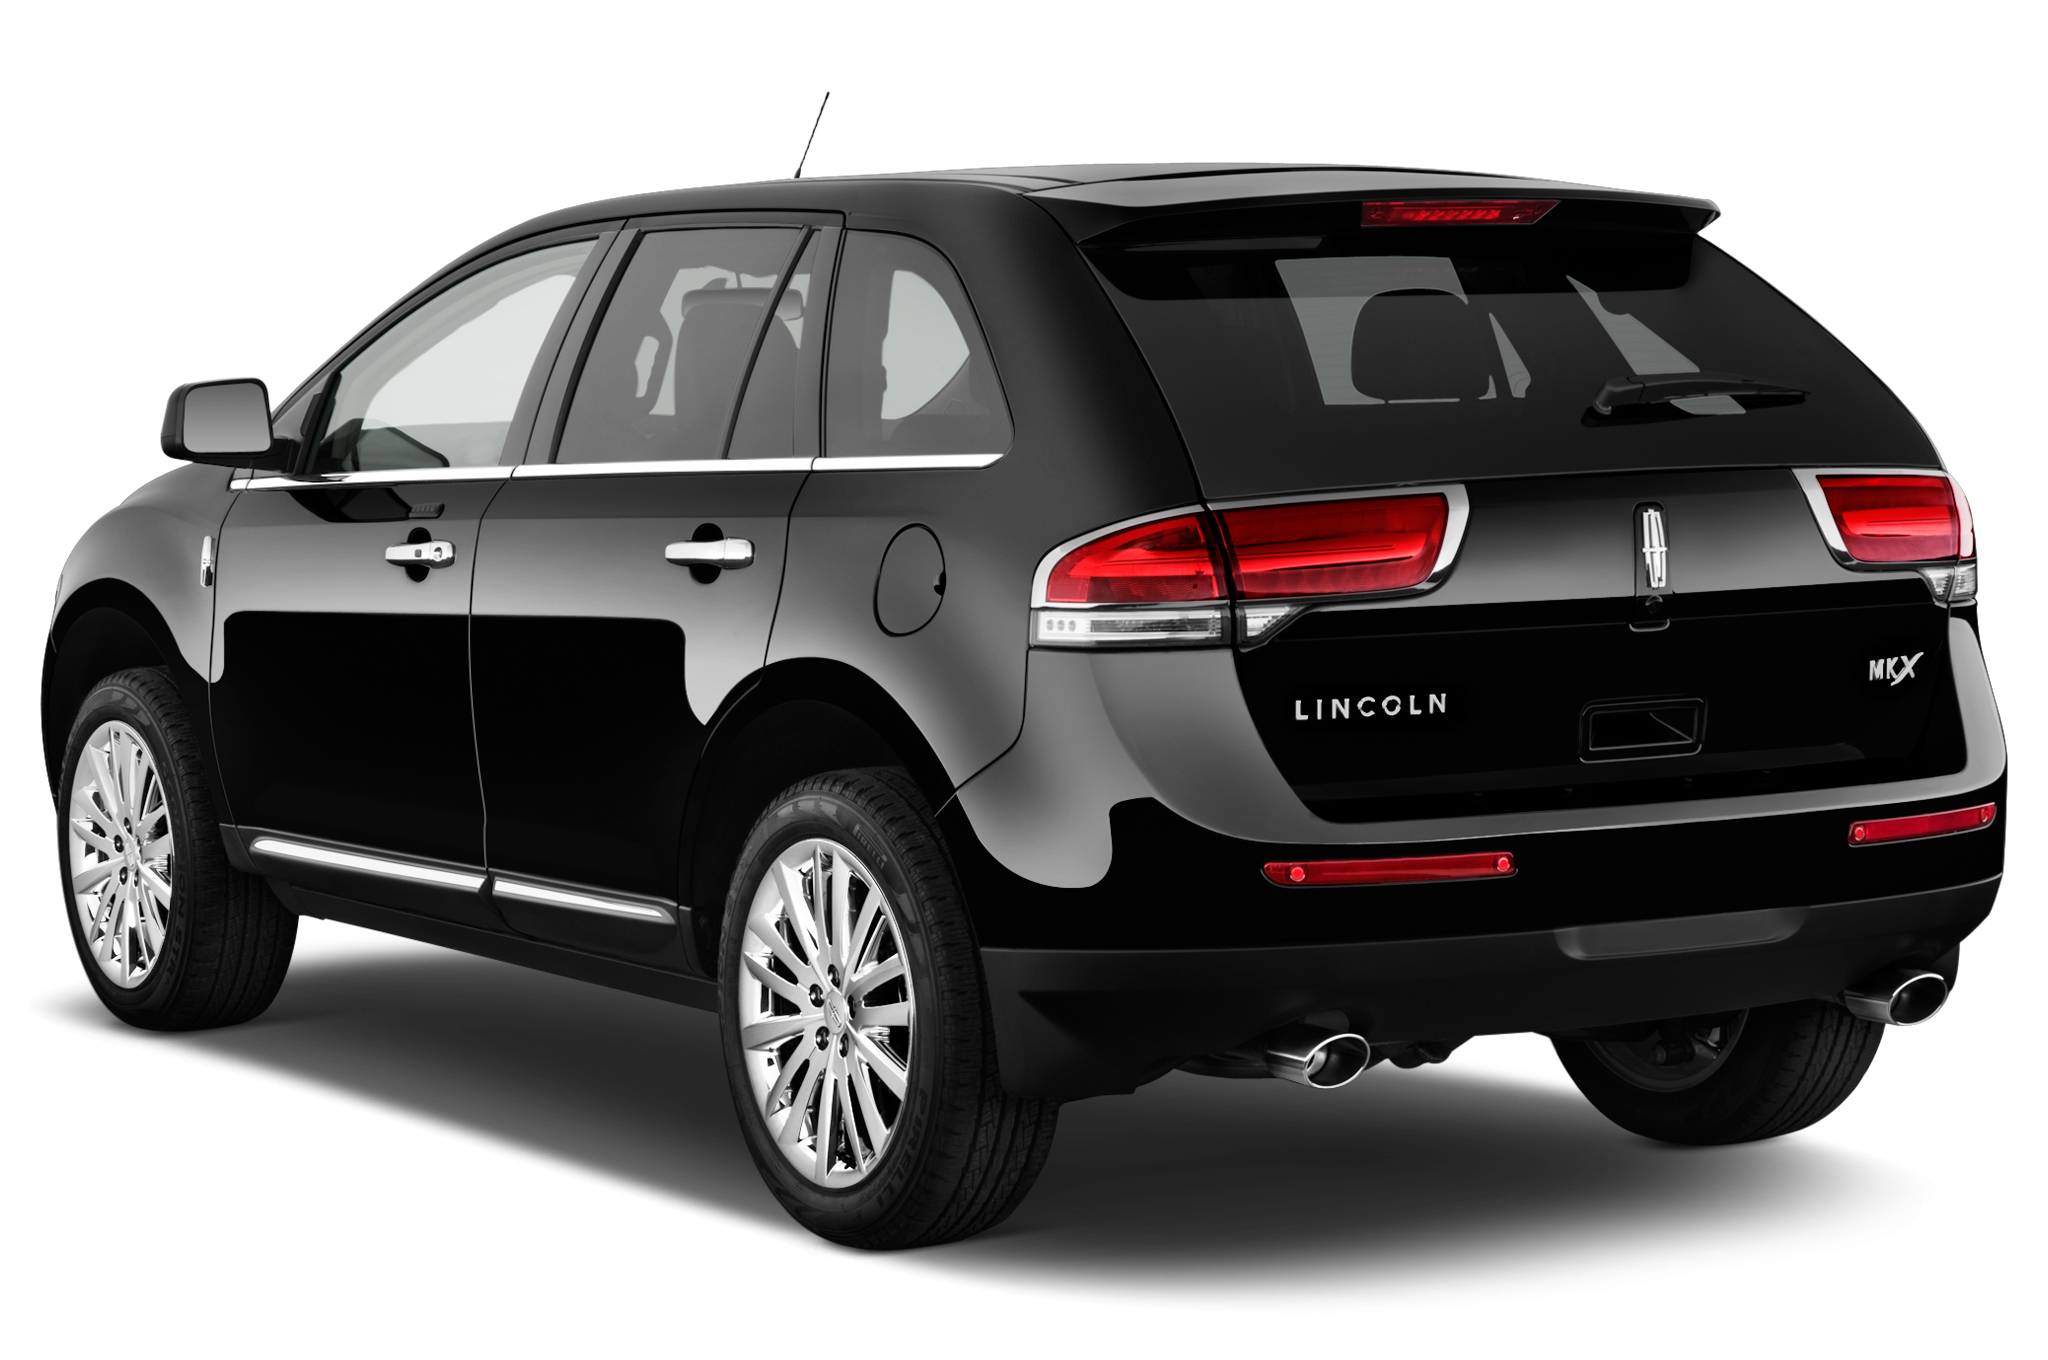 https://st.automobilemag.com/uploads/sites/10/2015/11/2011-lincoln-mkx-fwd-suv-angular-rear.png